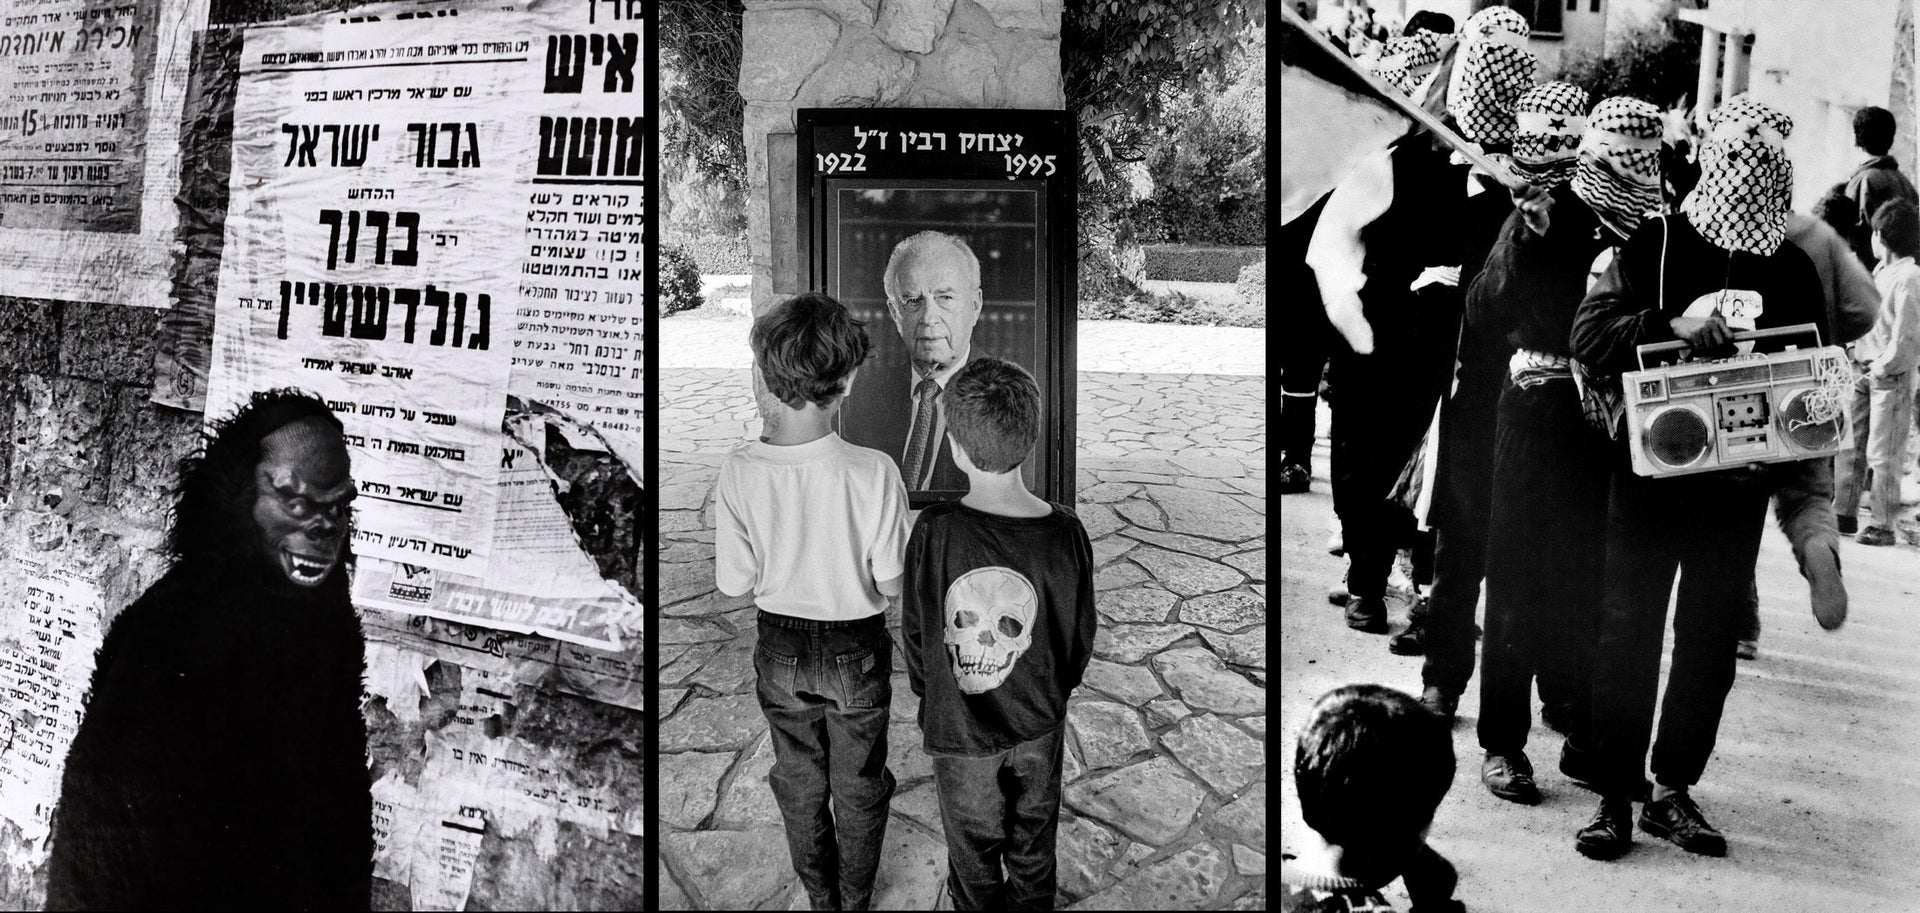 From Left: Purim in Mea Shearim in Jerusalem, 1995, Mount Herzl in Jerusalem, November 1995, and Demonstration against the occupation in Zeita village, 1991.